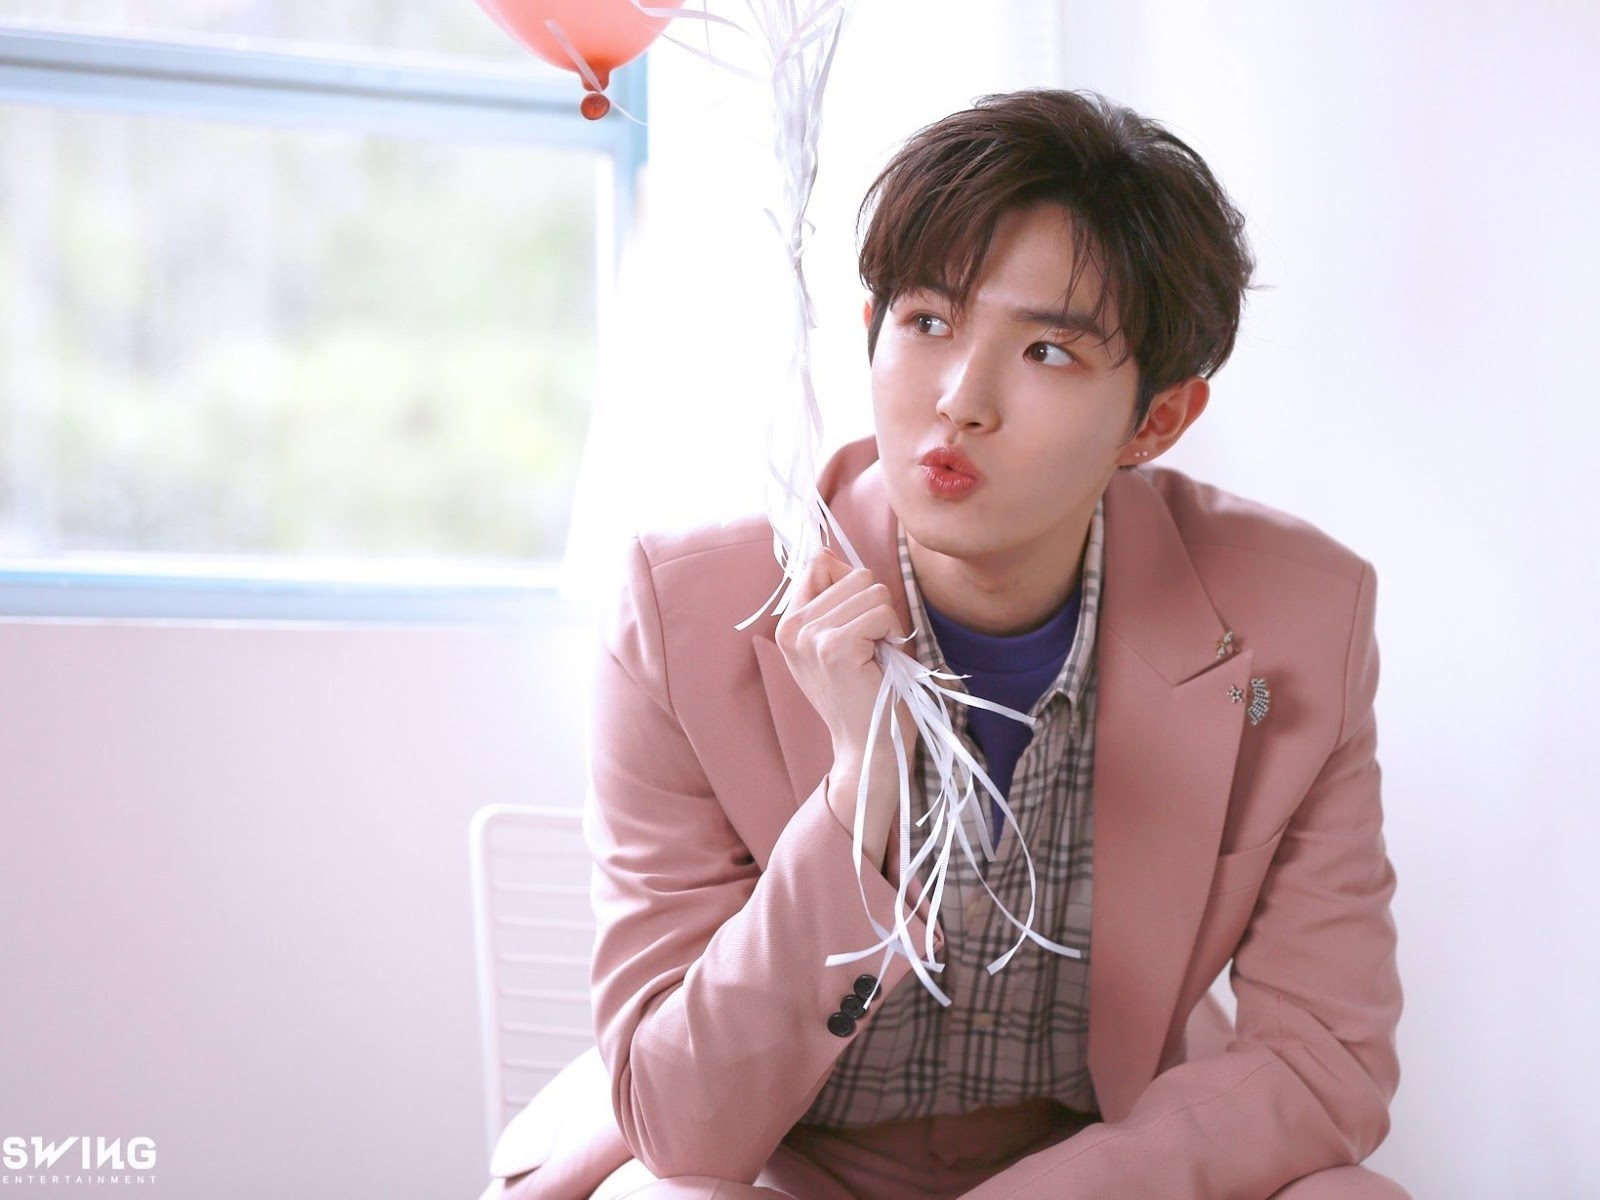 Kim Jae-hwan is the next former Wanna One member to return to Malaysia